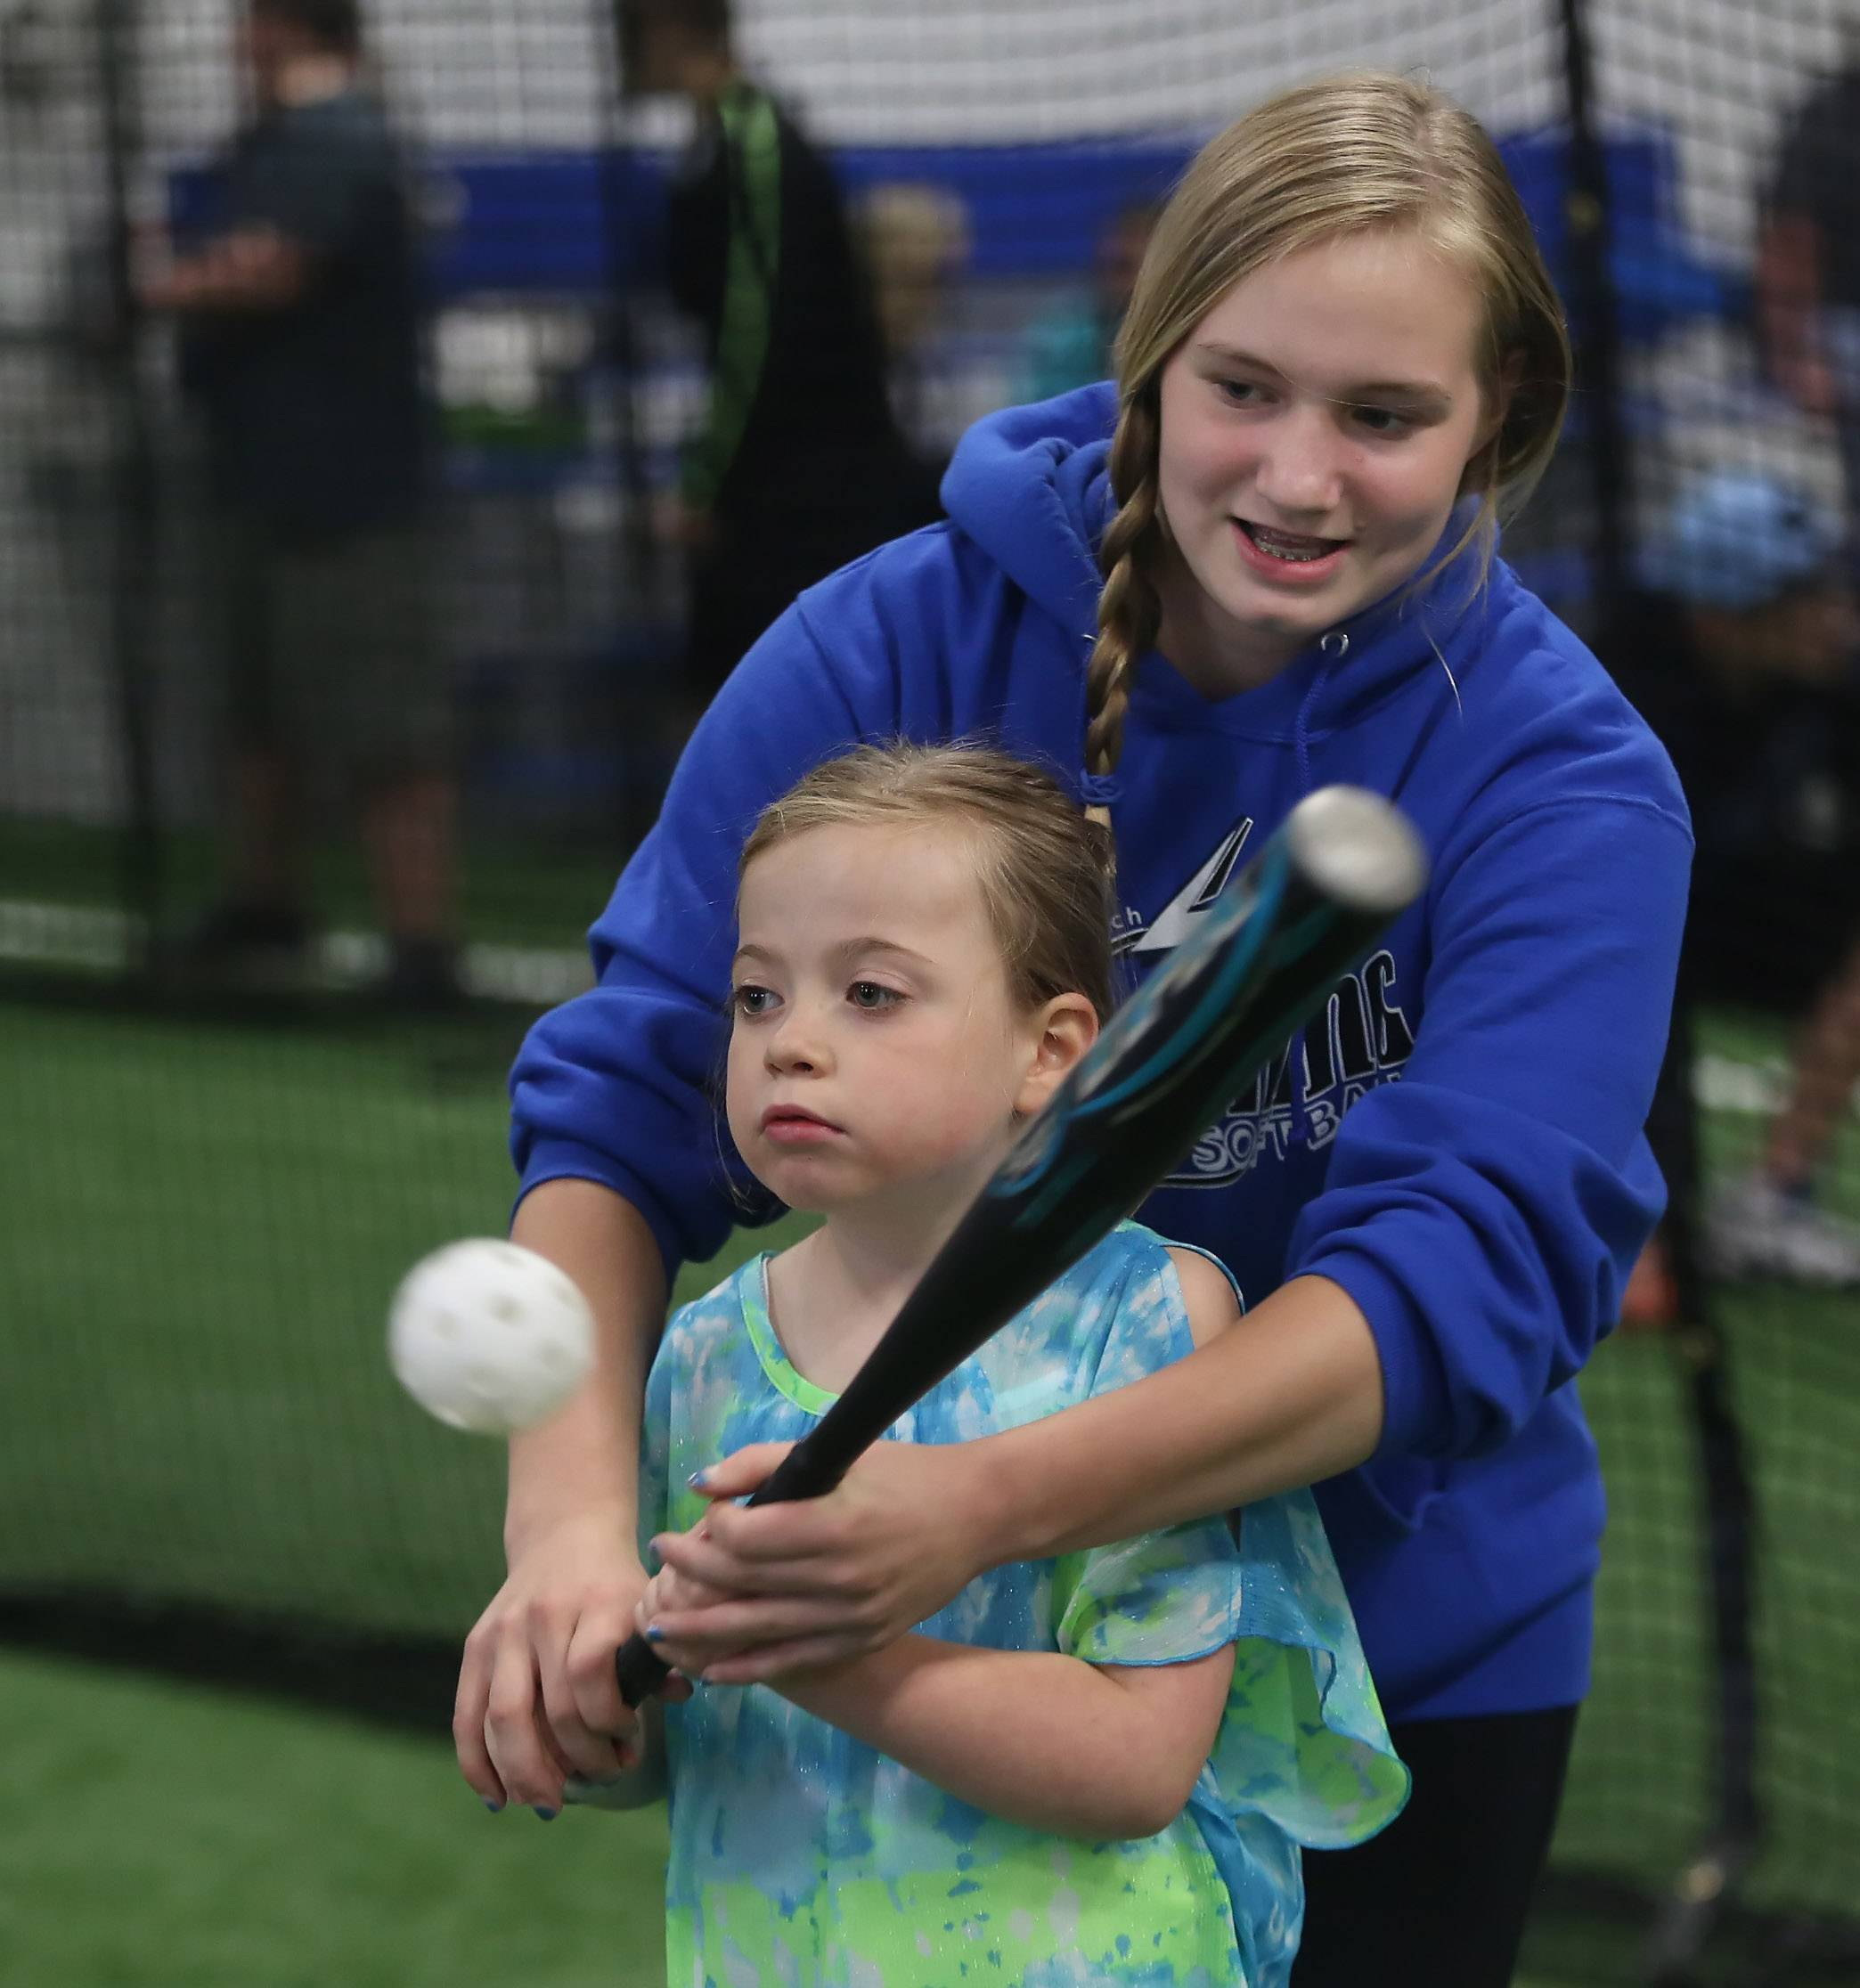 Yankees player Nicole Laubach, 7, receives help from her buddy, Riley Housinger, 12, during batting practice. In Buddy Baseball, children with special needs are paired on the field with volunteer buddies who can assist them while playing.